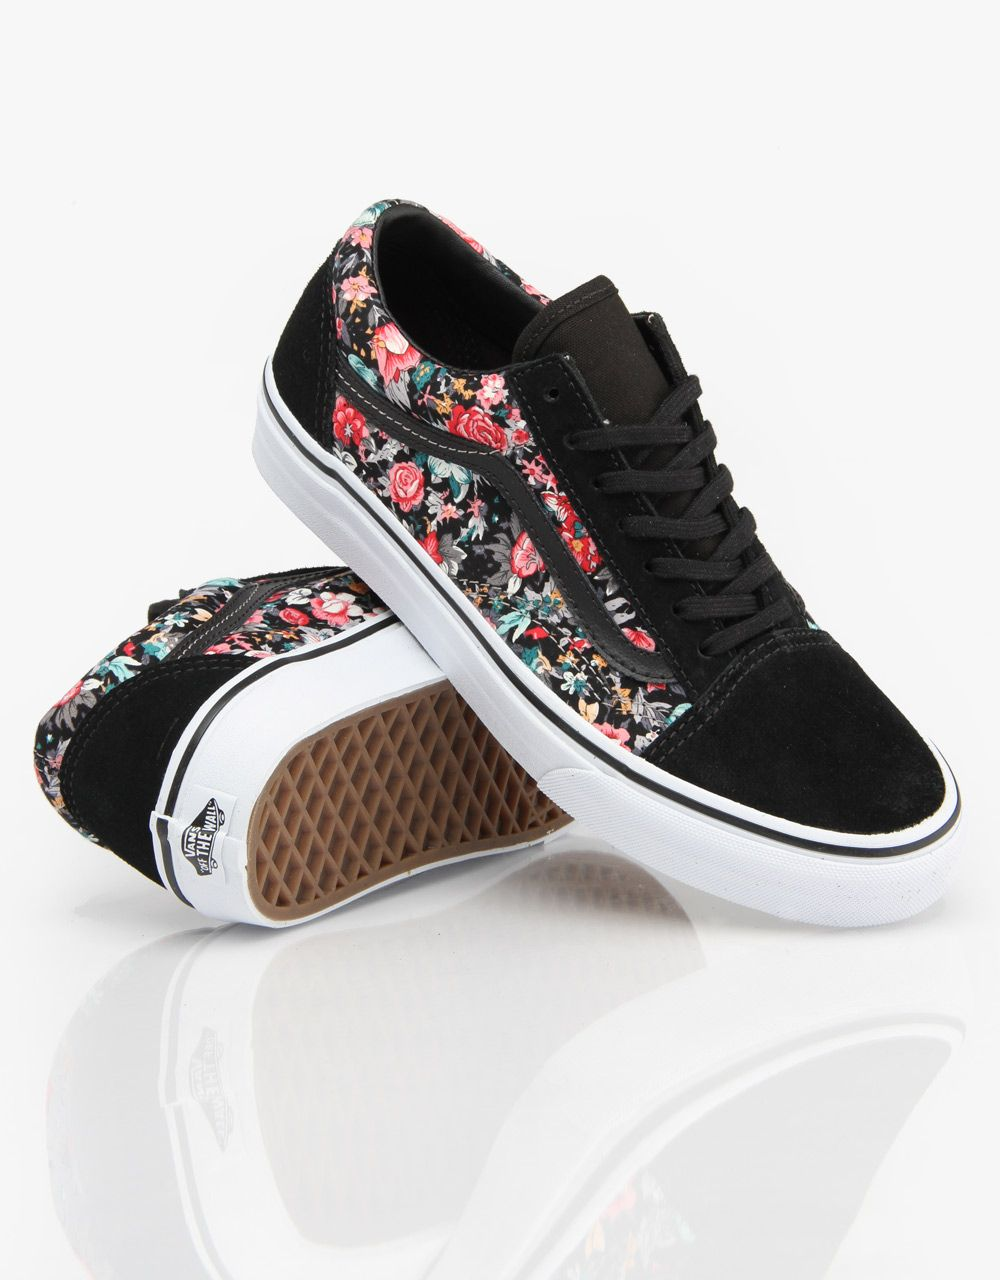 Zapatos Planos. Tacones. Ropa De Mujer. Capuchas. Vans Old Skool Girls  Skate Shoes - Multi Floral Black True White - RouteOne 43864f44af5